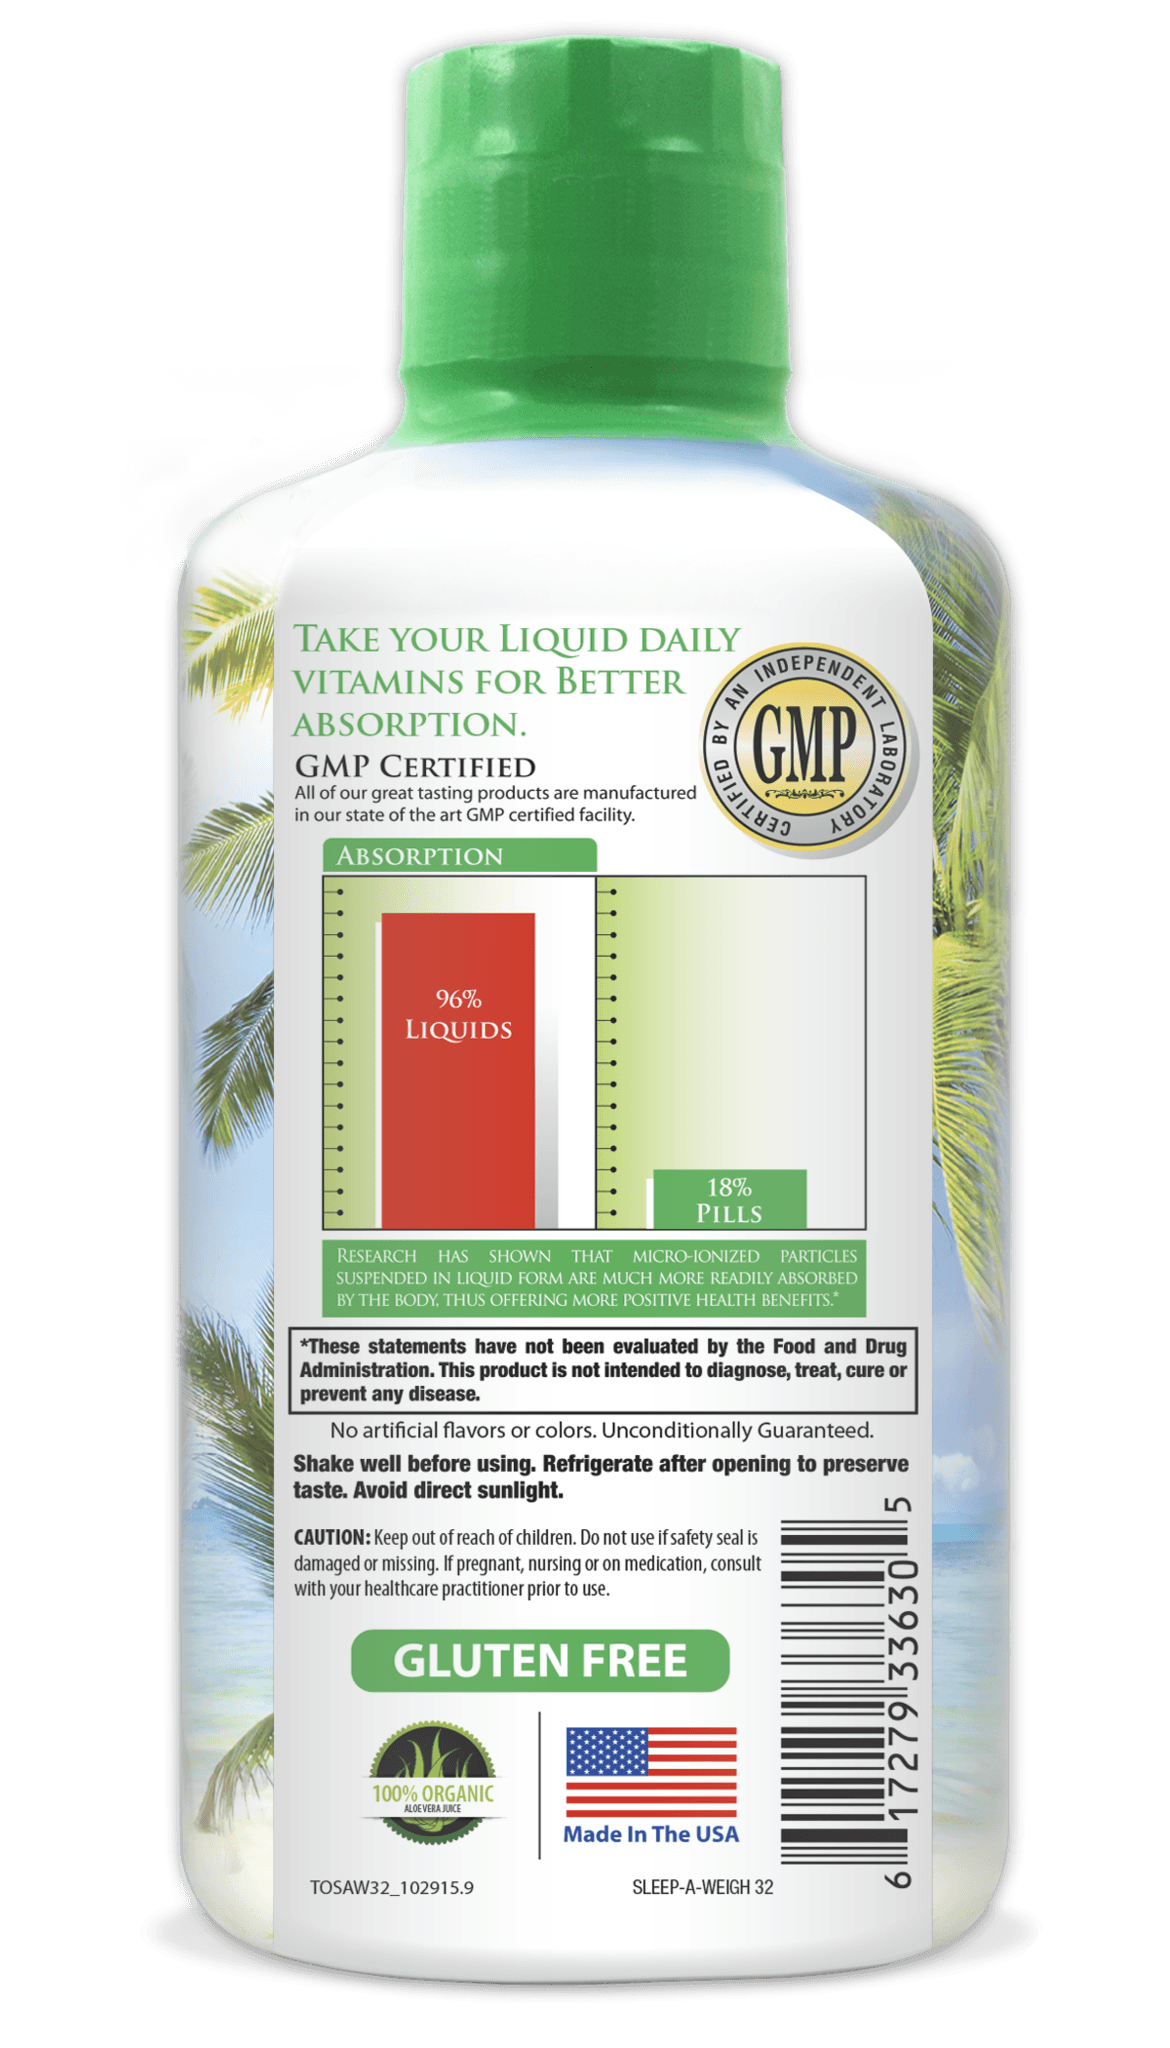 Tropical Oasis Sleep-A-Weigh Plus Liquid - Naturally Promotes Restfulness, Appetite Suppression & Fat Burning -32oz, 32serv - tropical-oasis-store